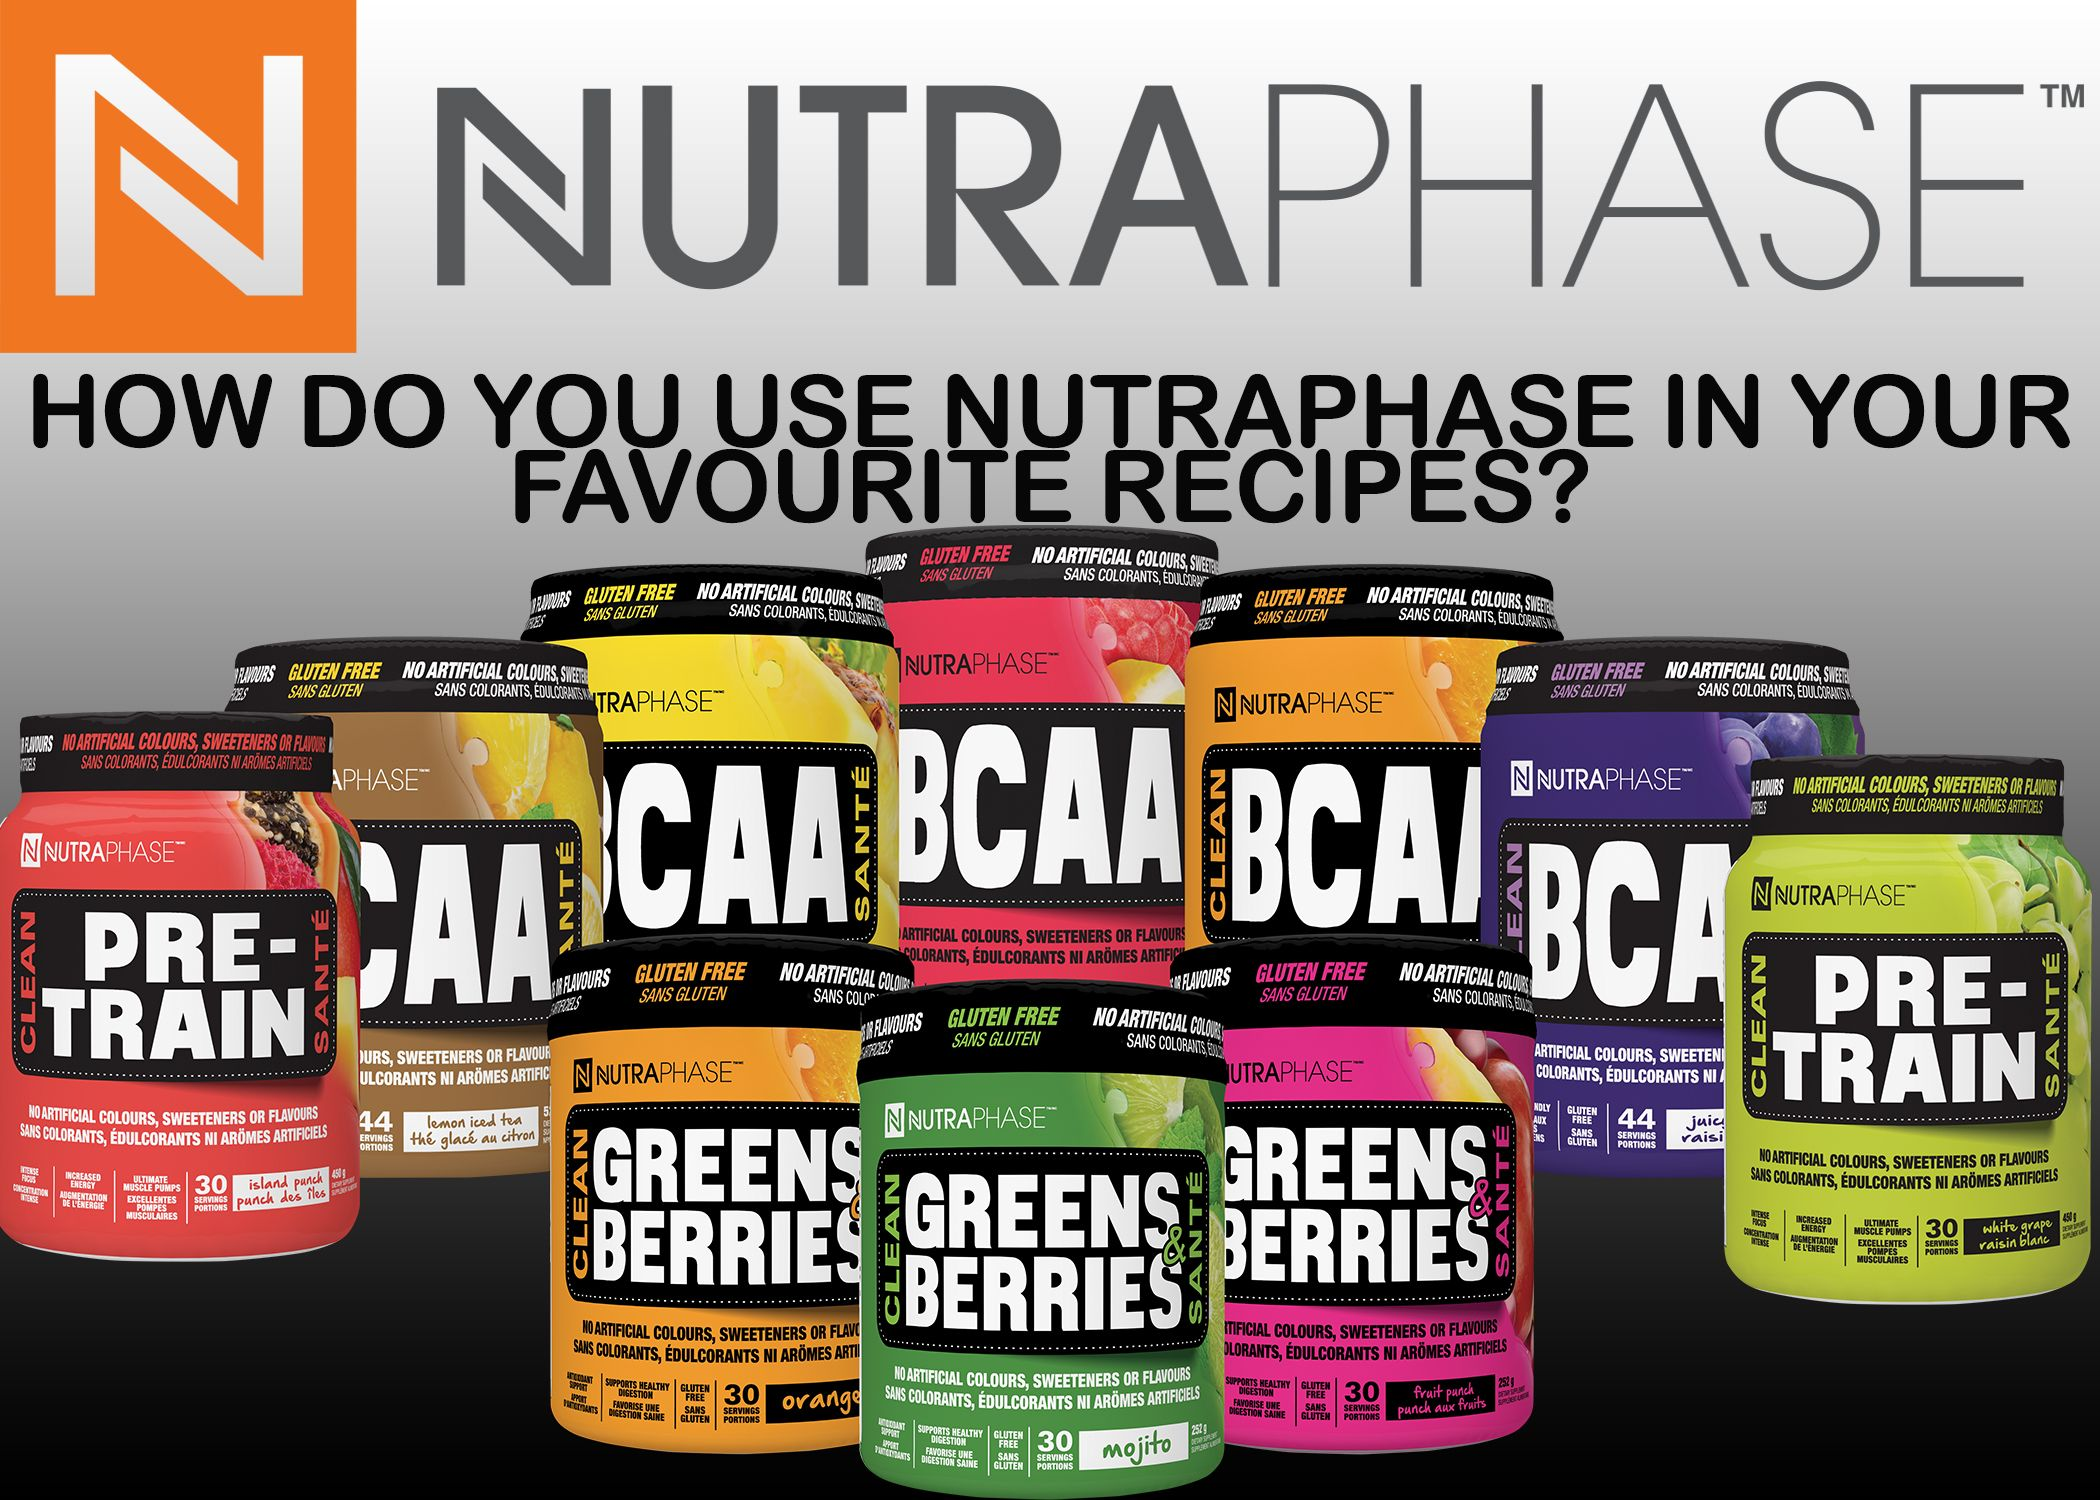 How do you use nutraphase in your favourite recipes the